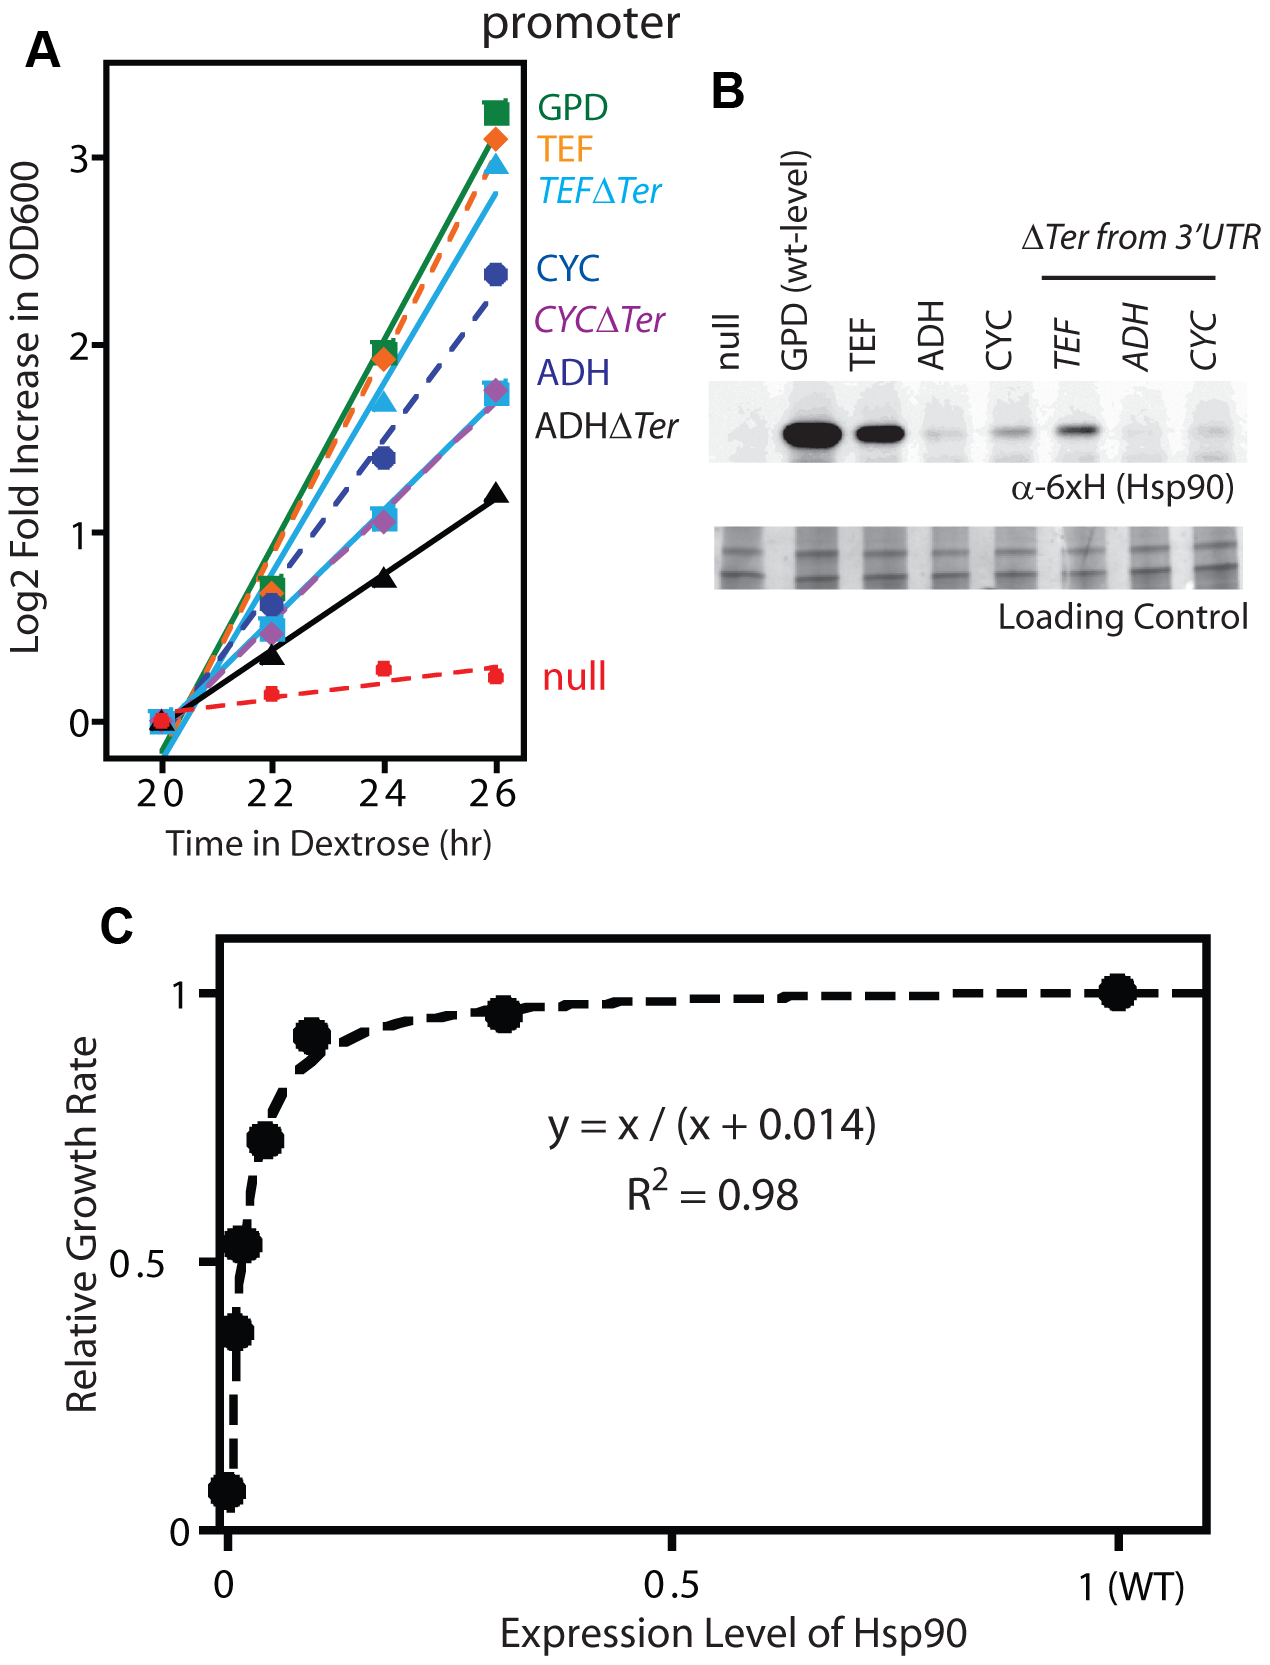 Effect of reduced Hsp90 expression on yeast growth.